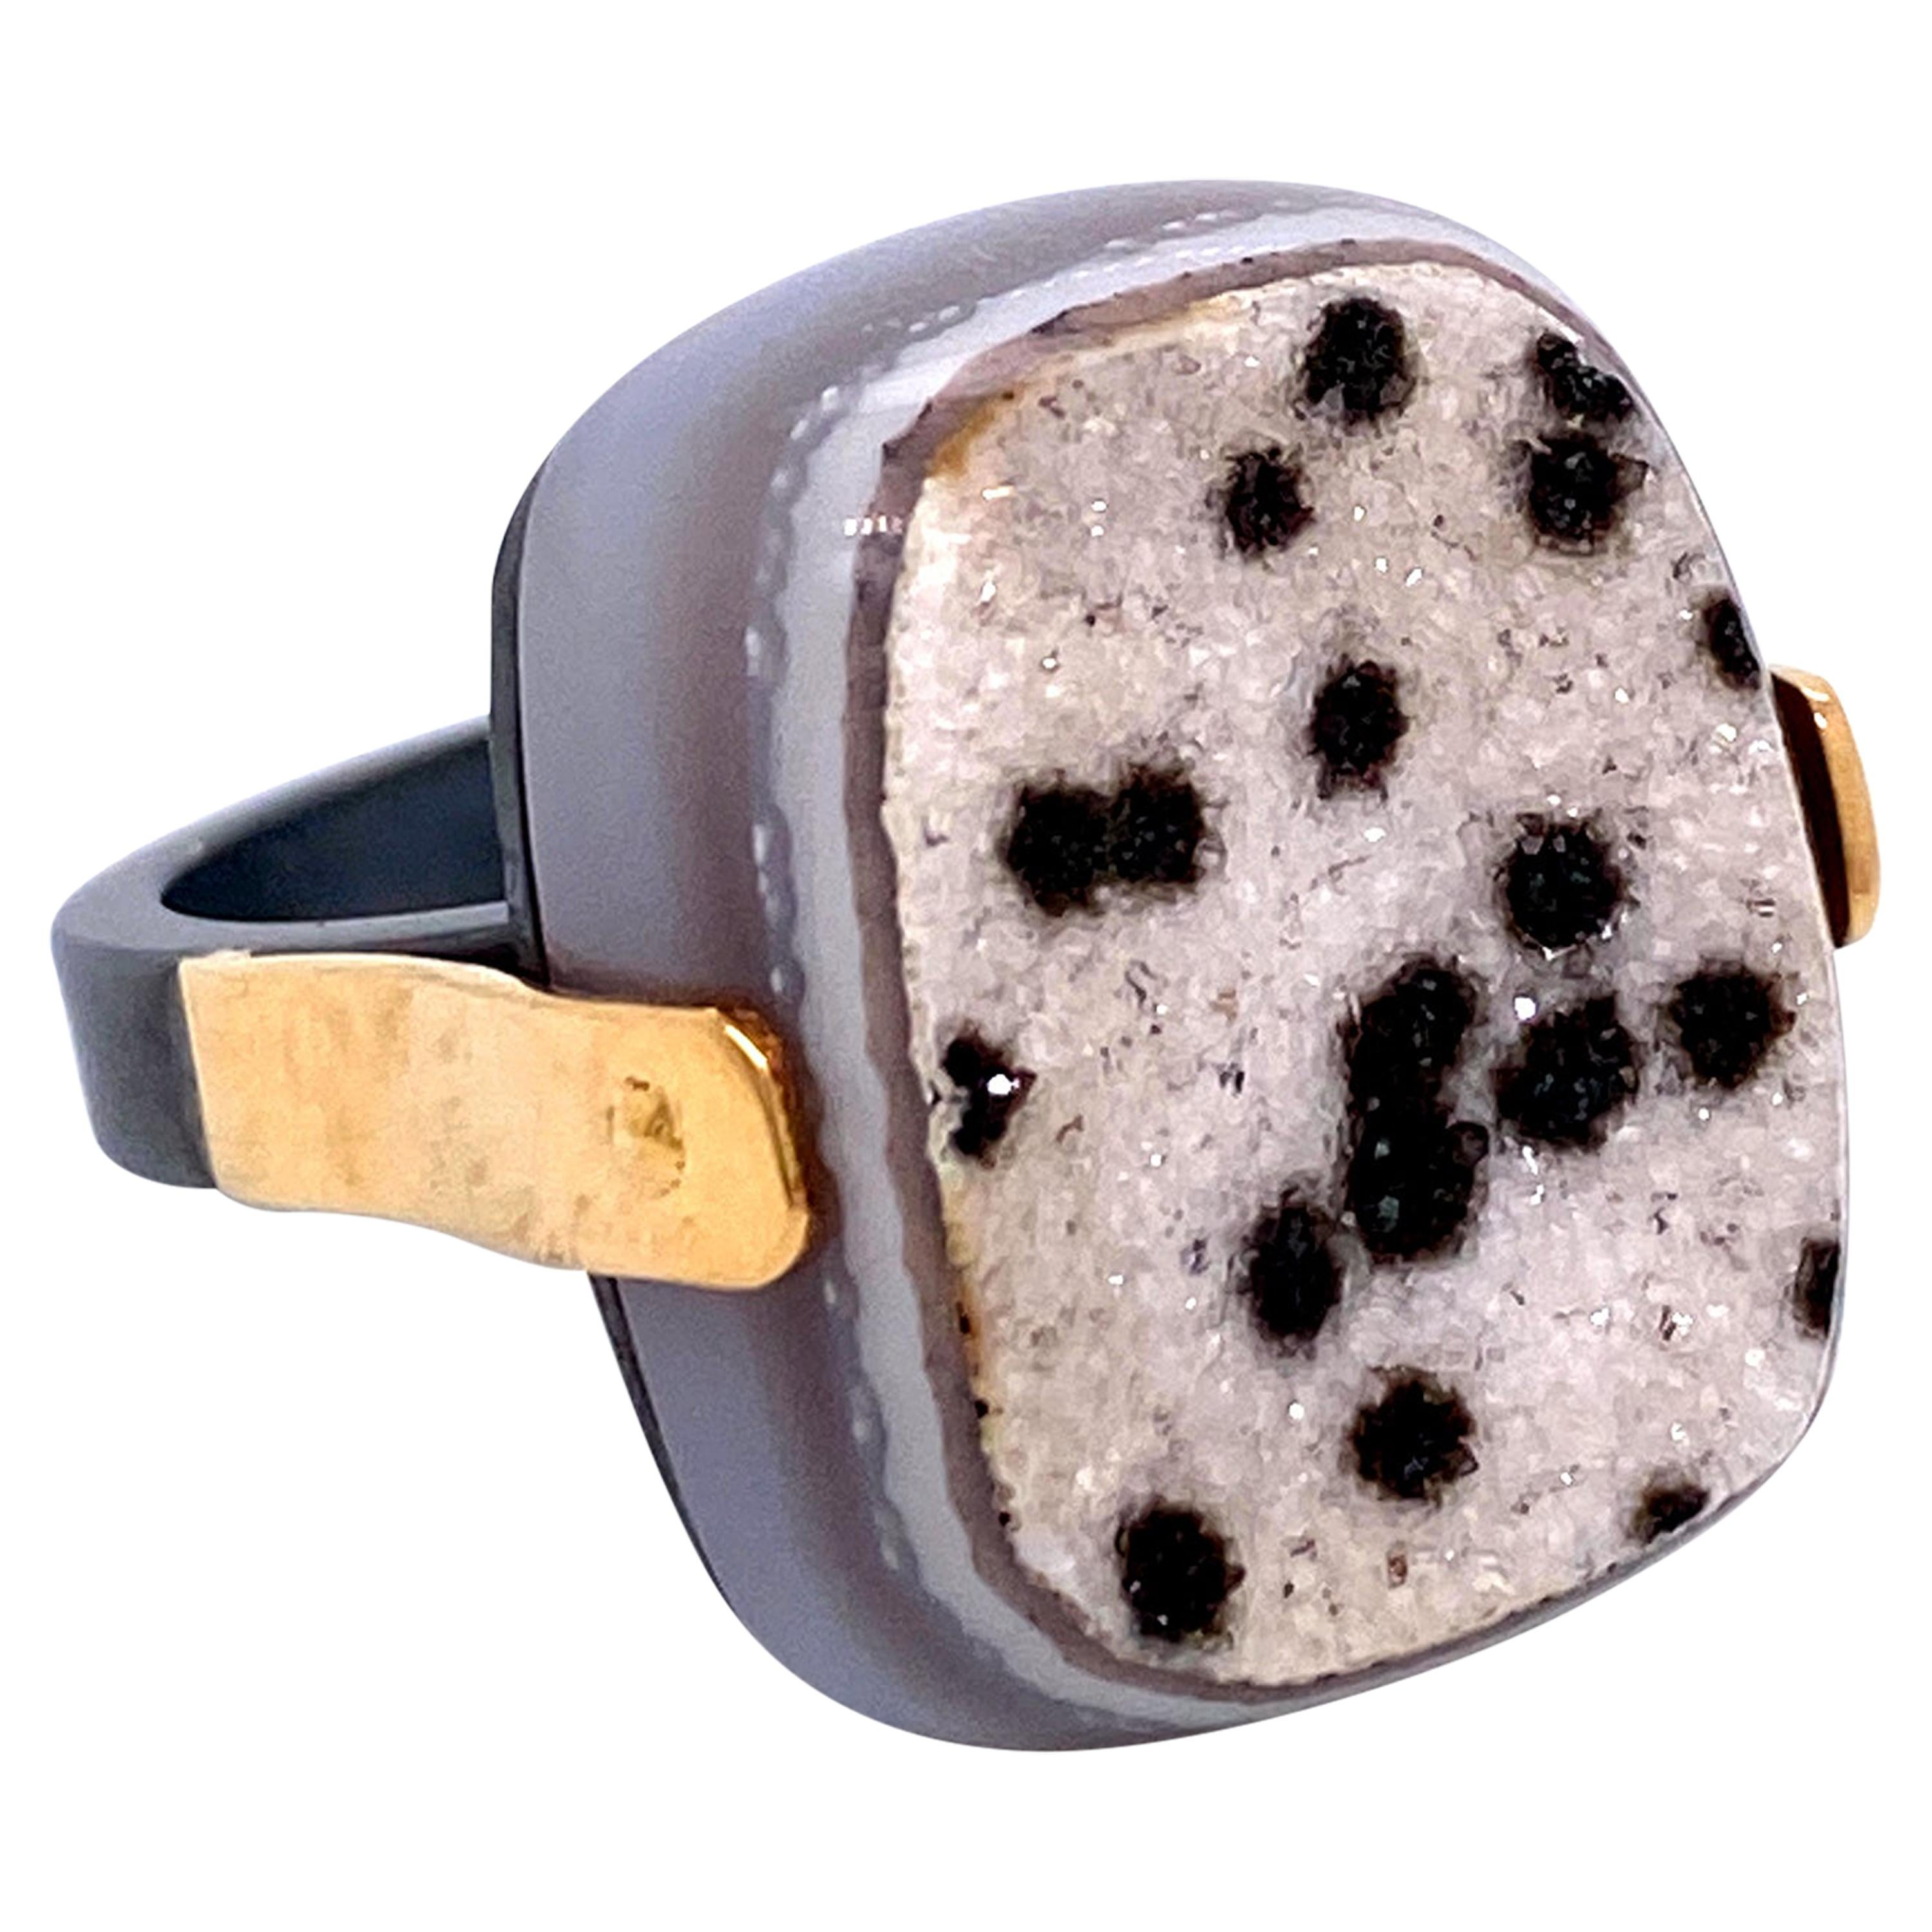 18 Karat Yellow Gold and Oxidized Sterling Silver Speckled Druzy Quartz Ring